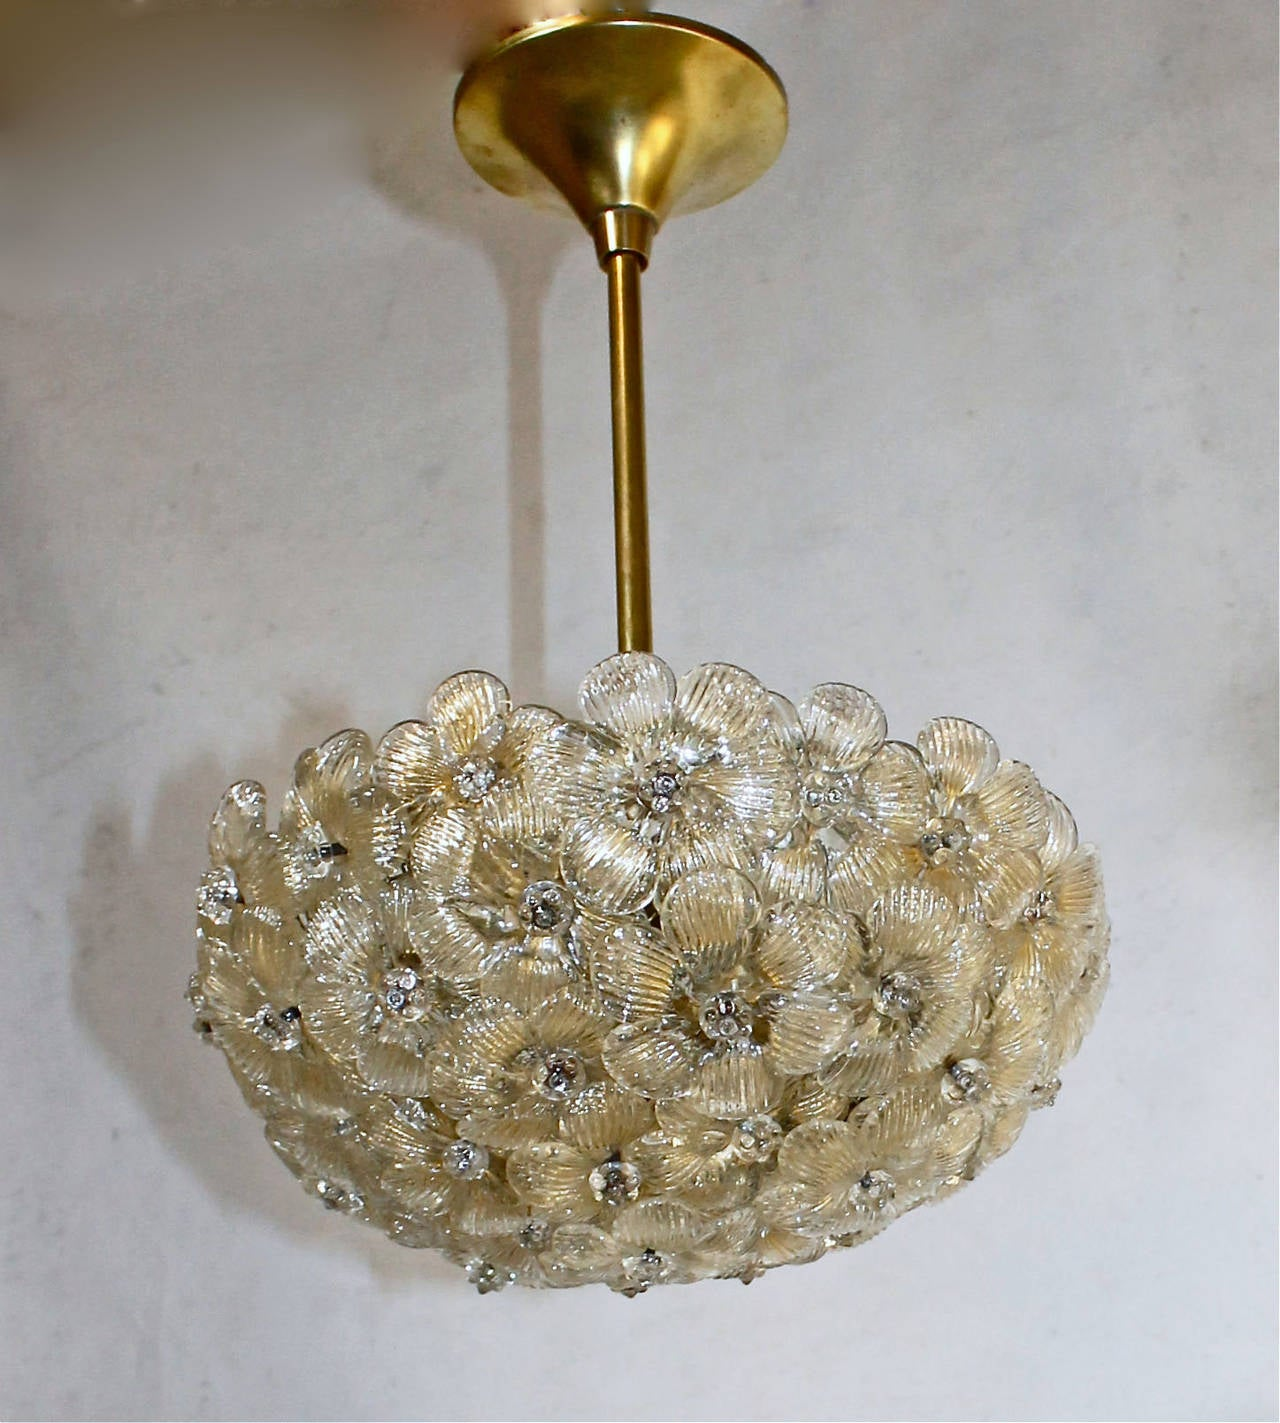 barovier murano glass floral light ceiling pendant at 1stdibs. Black Bedroom Furniture Sets. Home Design Ideas